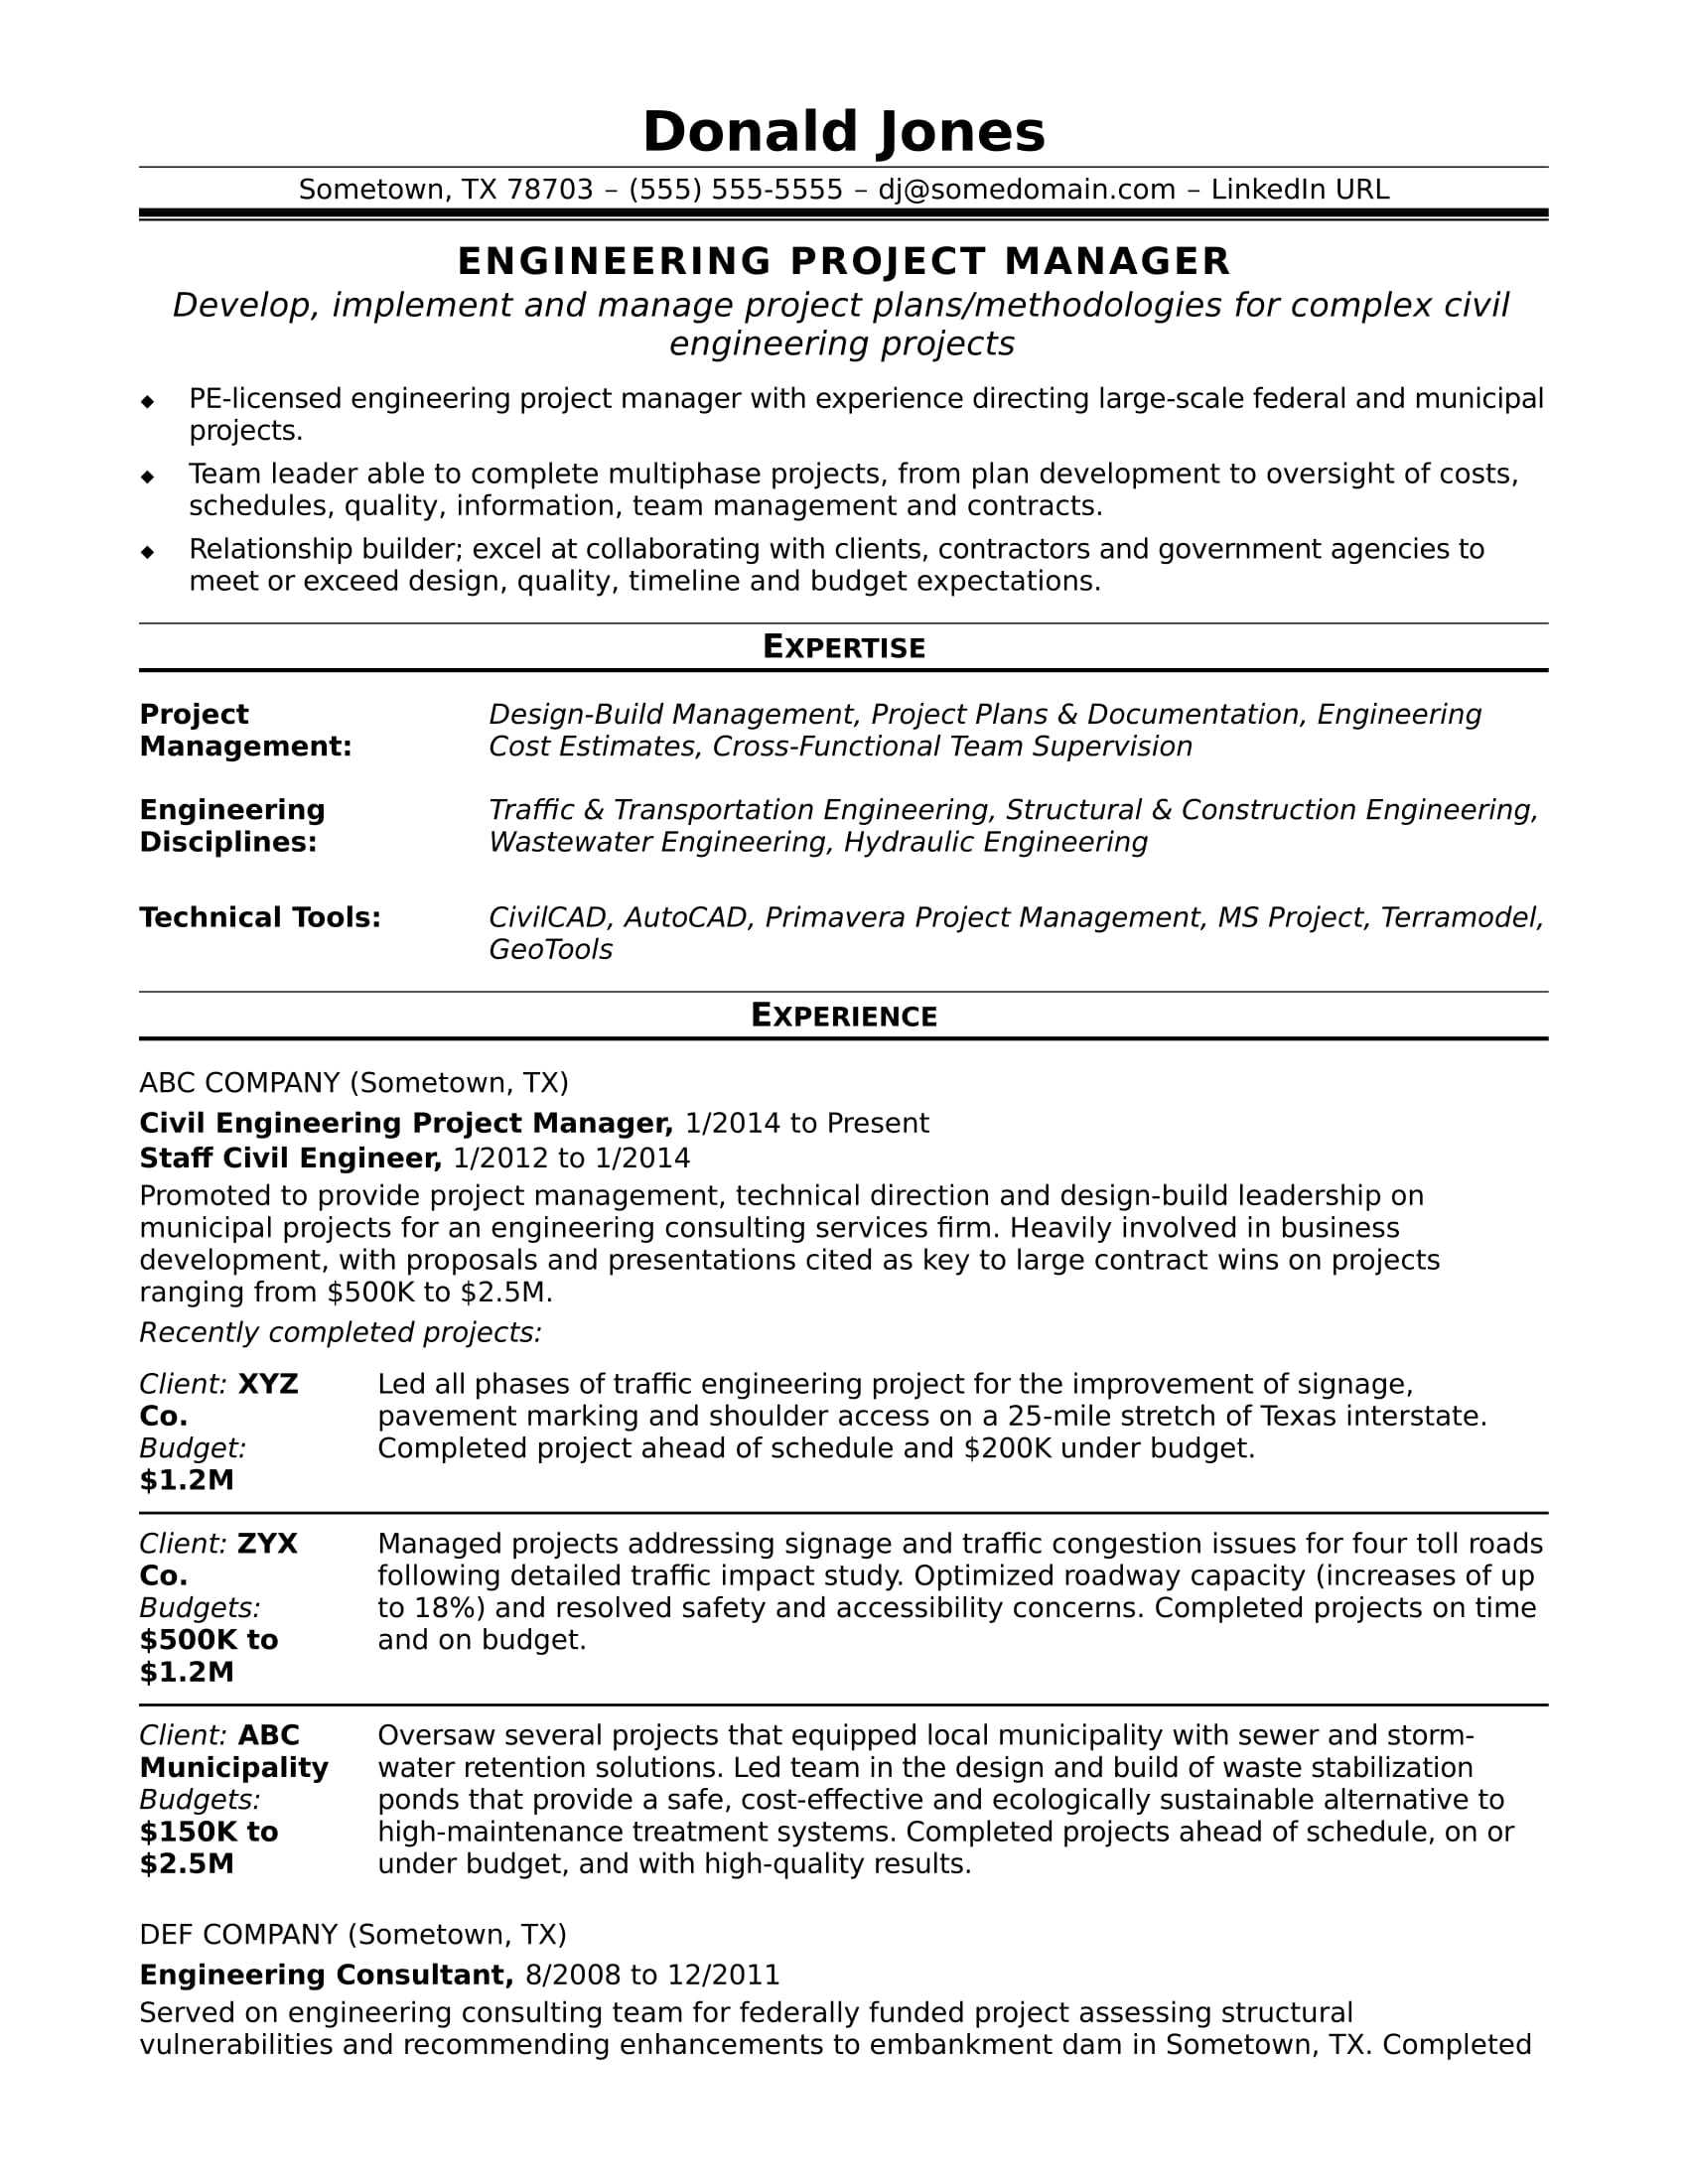 sample resume for a midlevel engineering project manager - Engineering Manager Resume